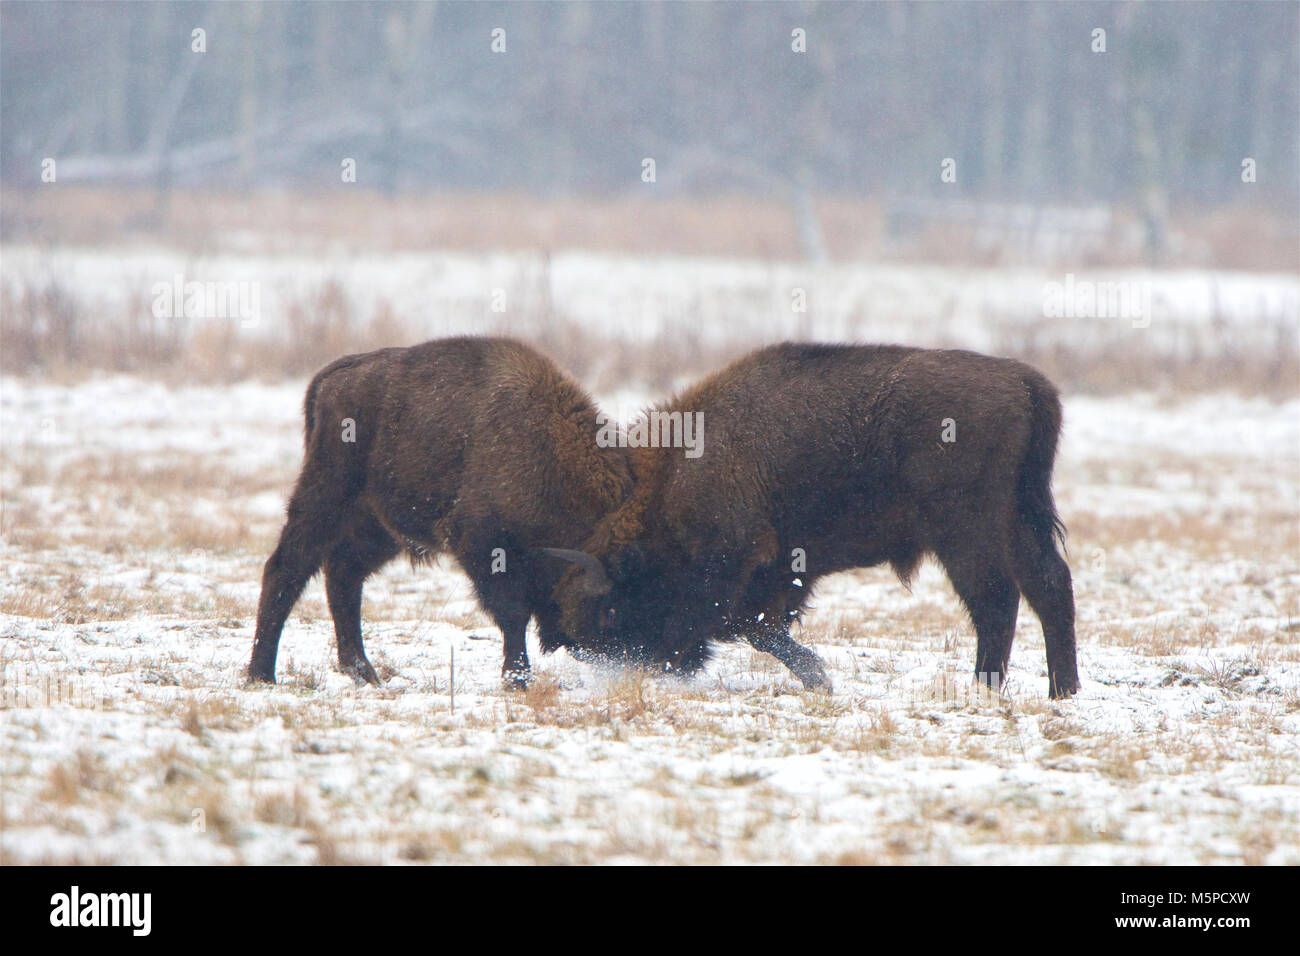 Two full-grown European Bison sparring, in a snowed wintery landscape, in Bialowieza National Park, in Poland. Stock Photo